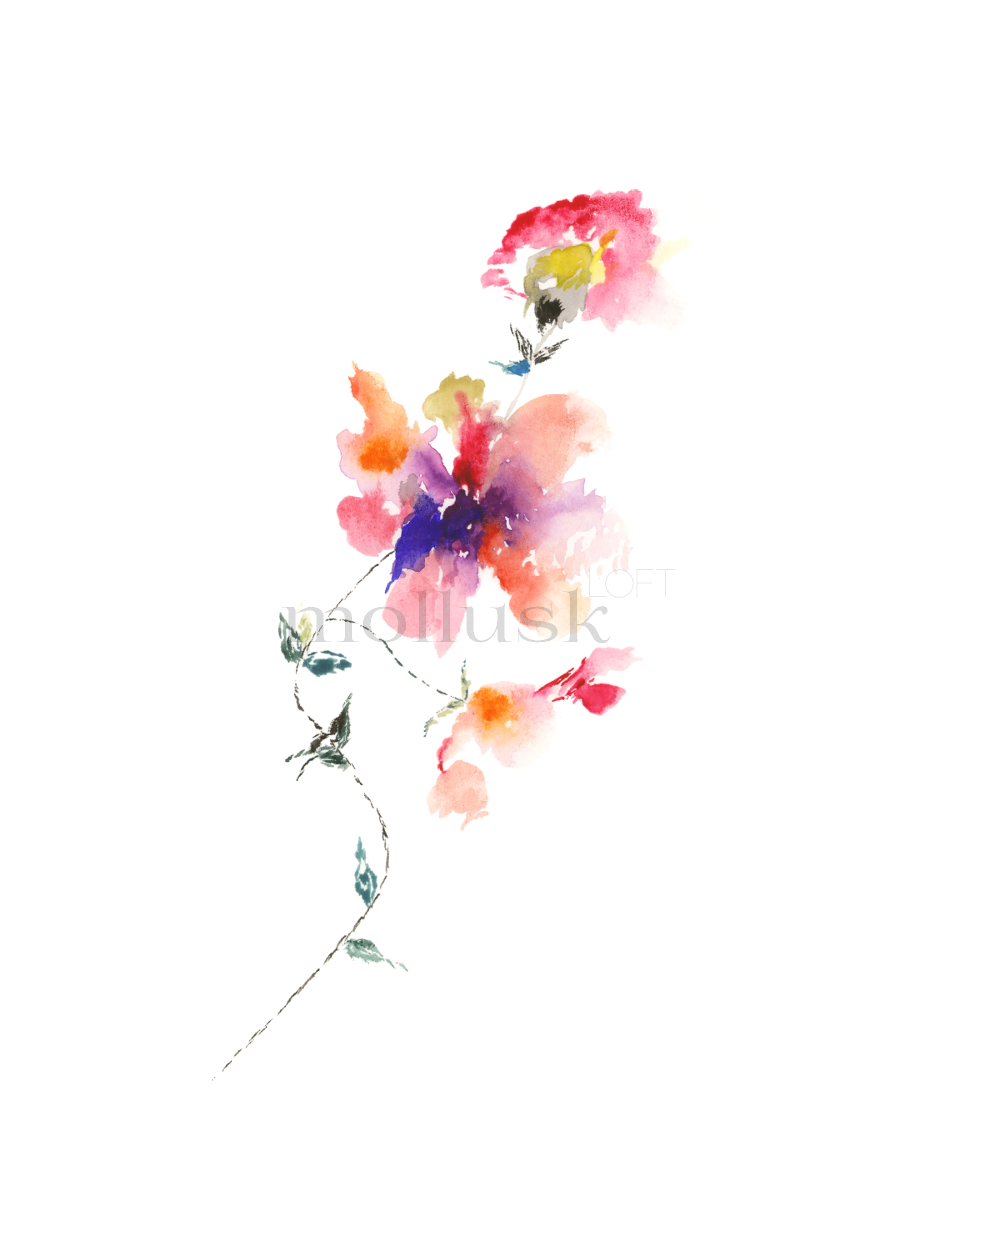 Watercolor Floral Bouquet Sold By Molluskloft On Storenvy